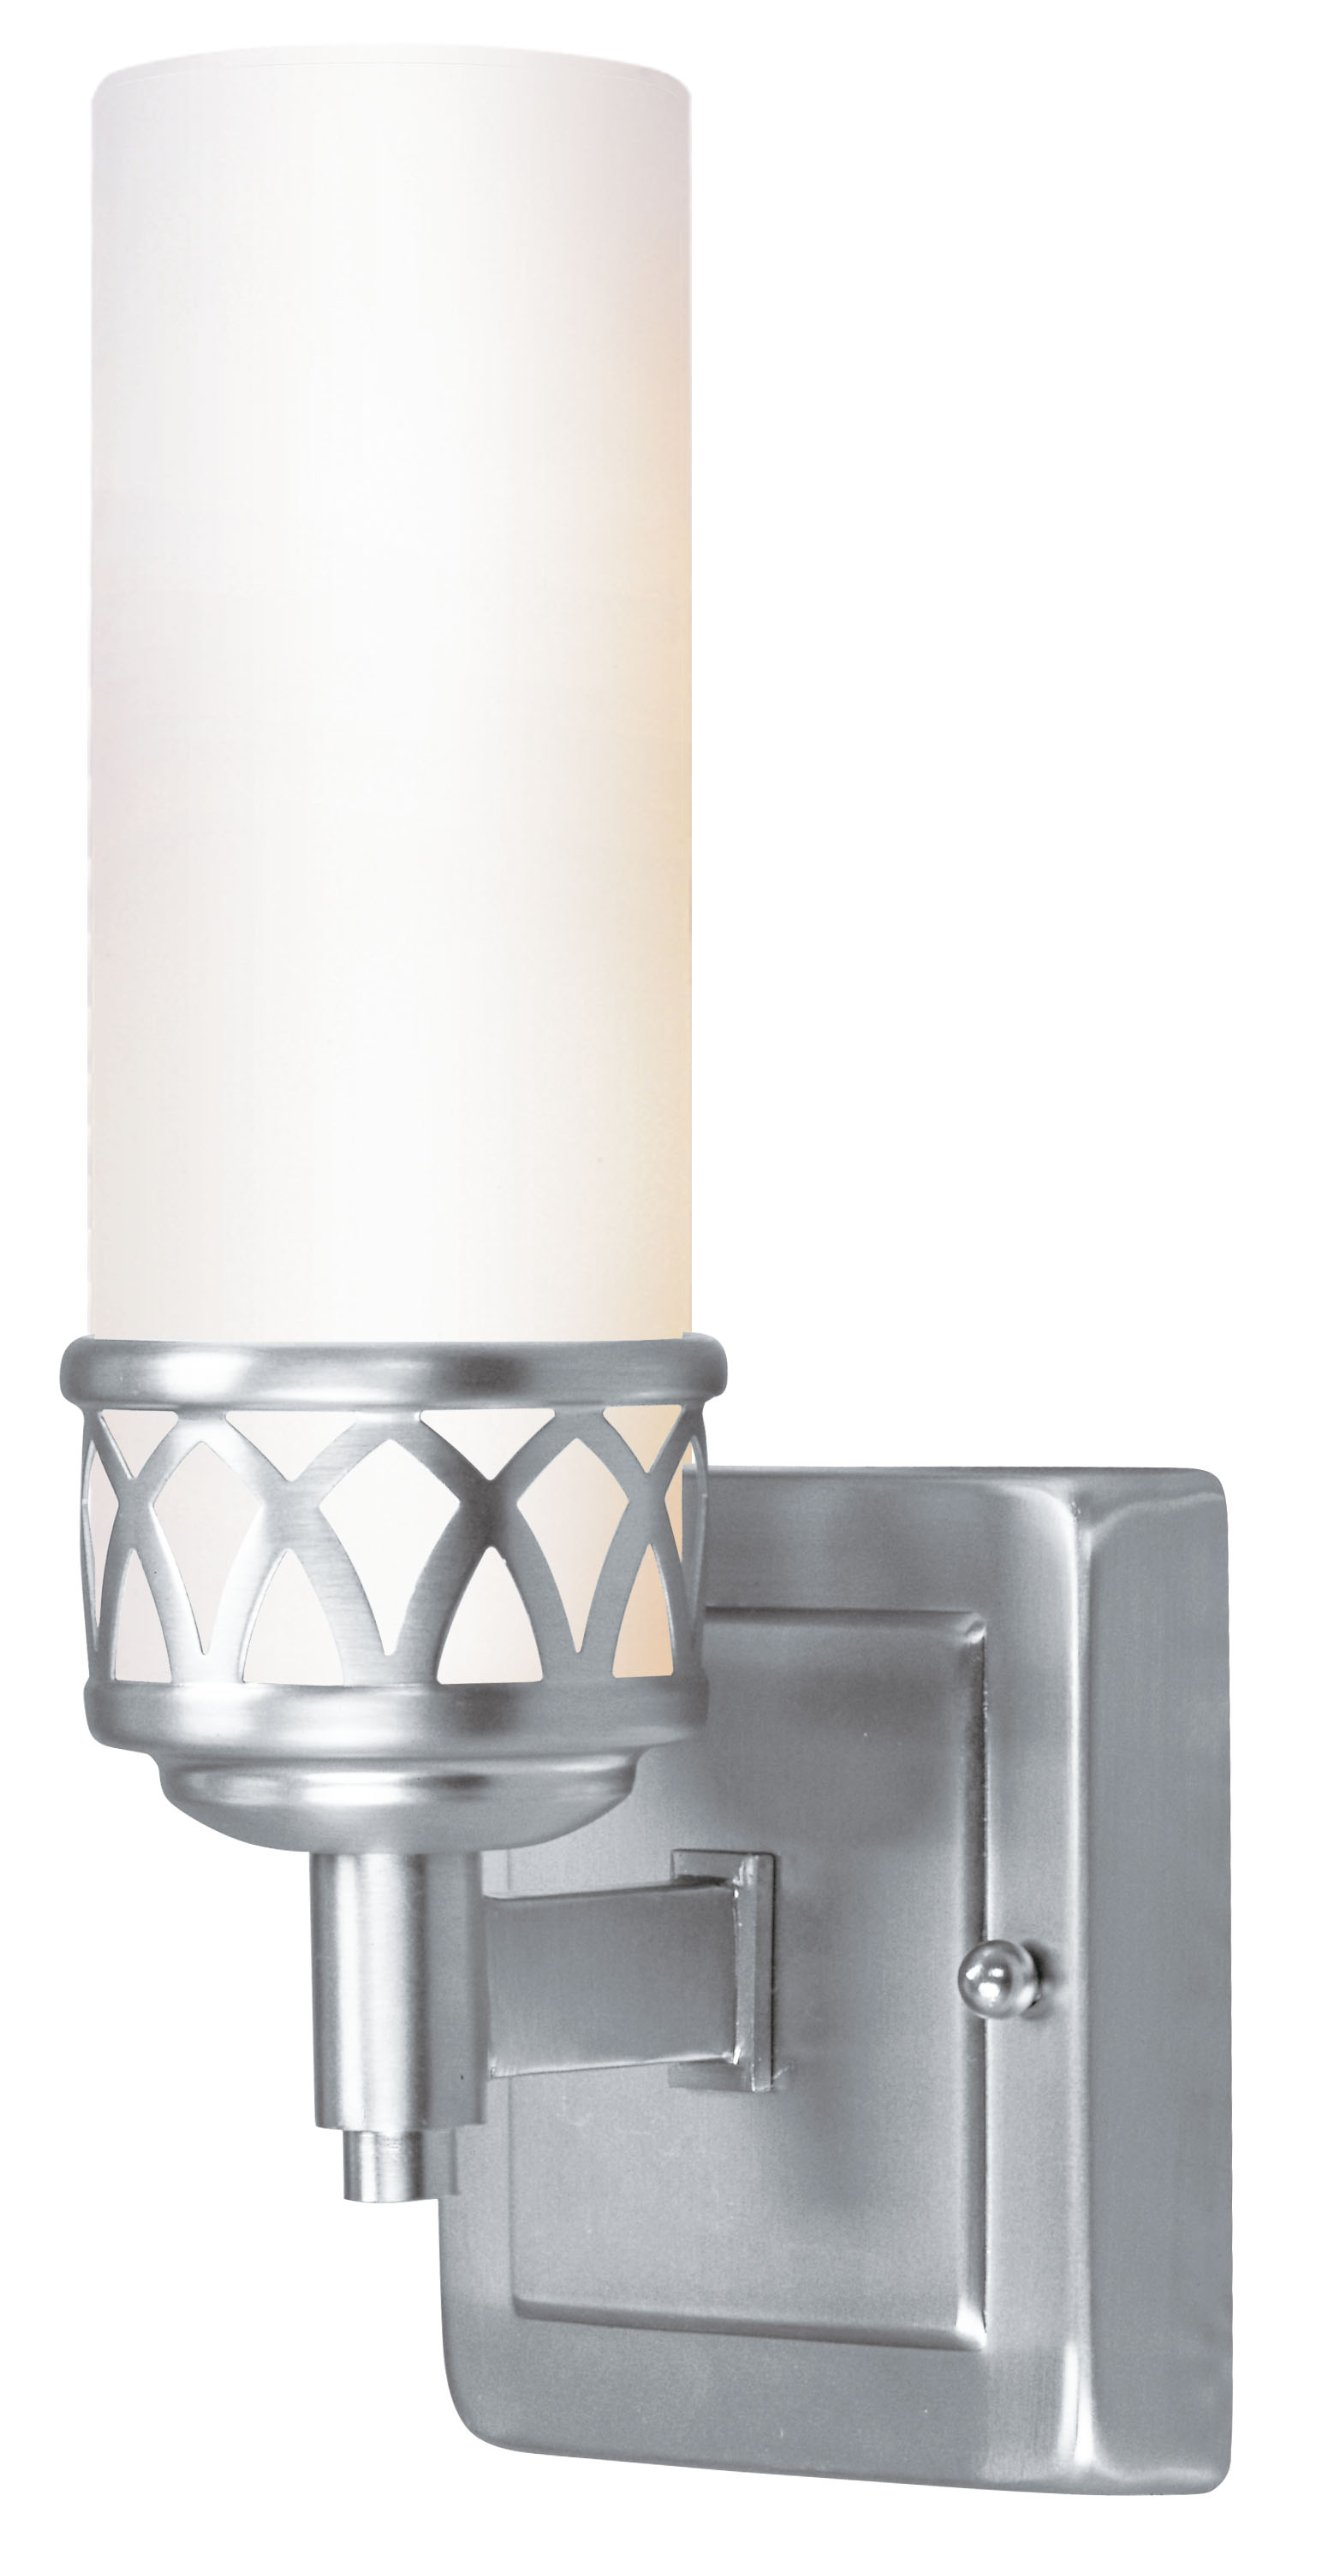 Livex Lighting 4721-91 Bath Vanity with Hand Blown Satin White Glass Shades, Brushed Nickel